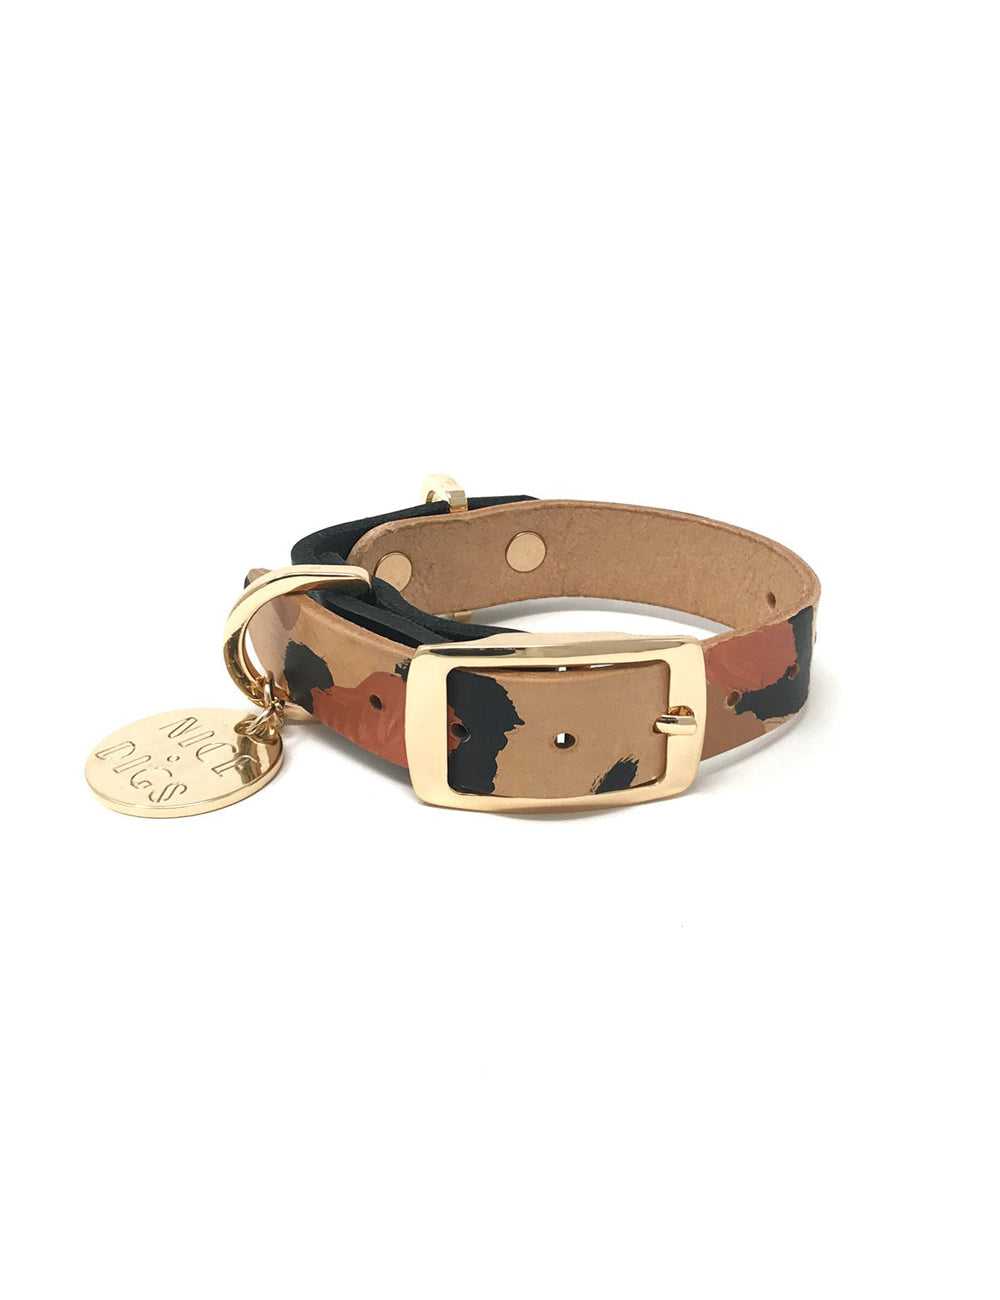 Two Tone Dog Collar | Tan Animal